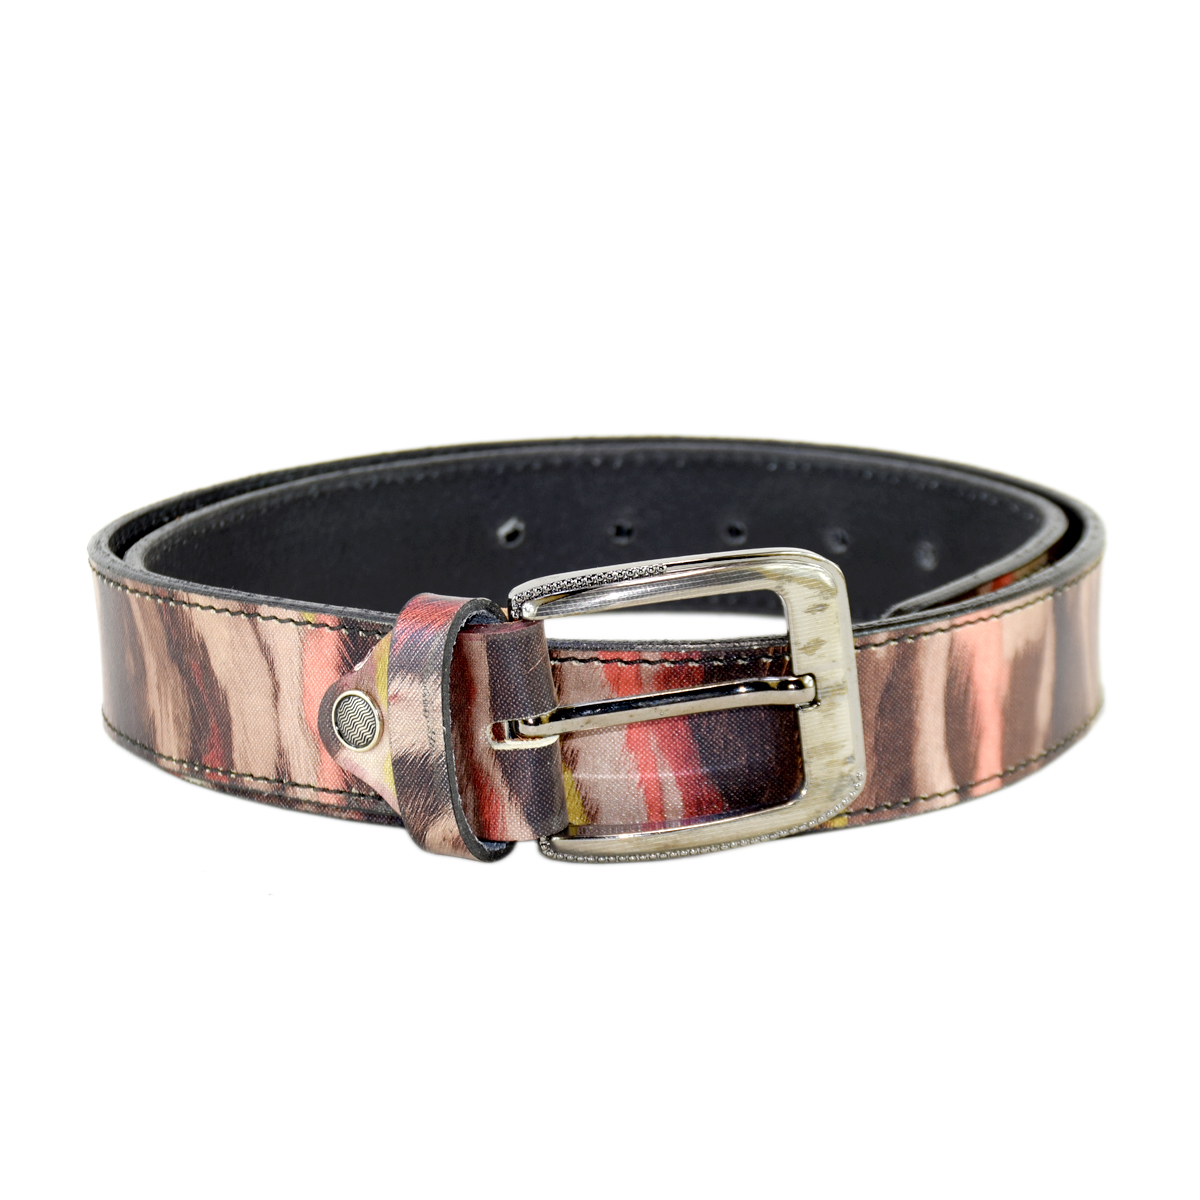 Casual Jeans Leather Belt 1.5""